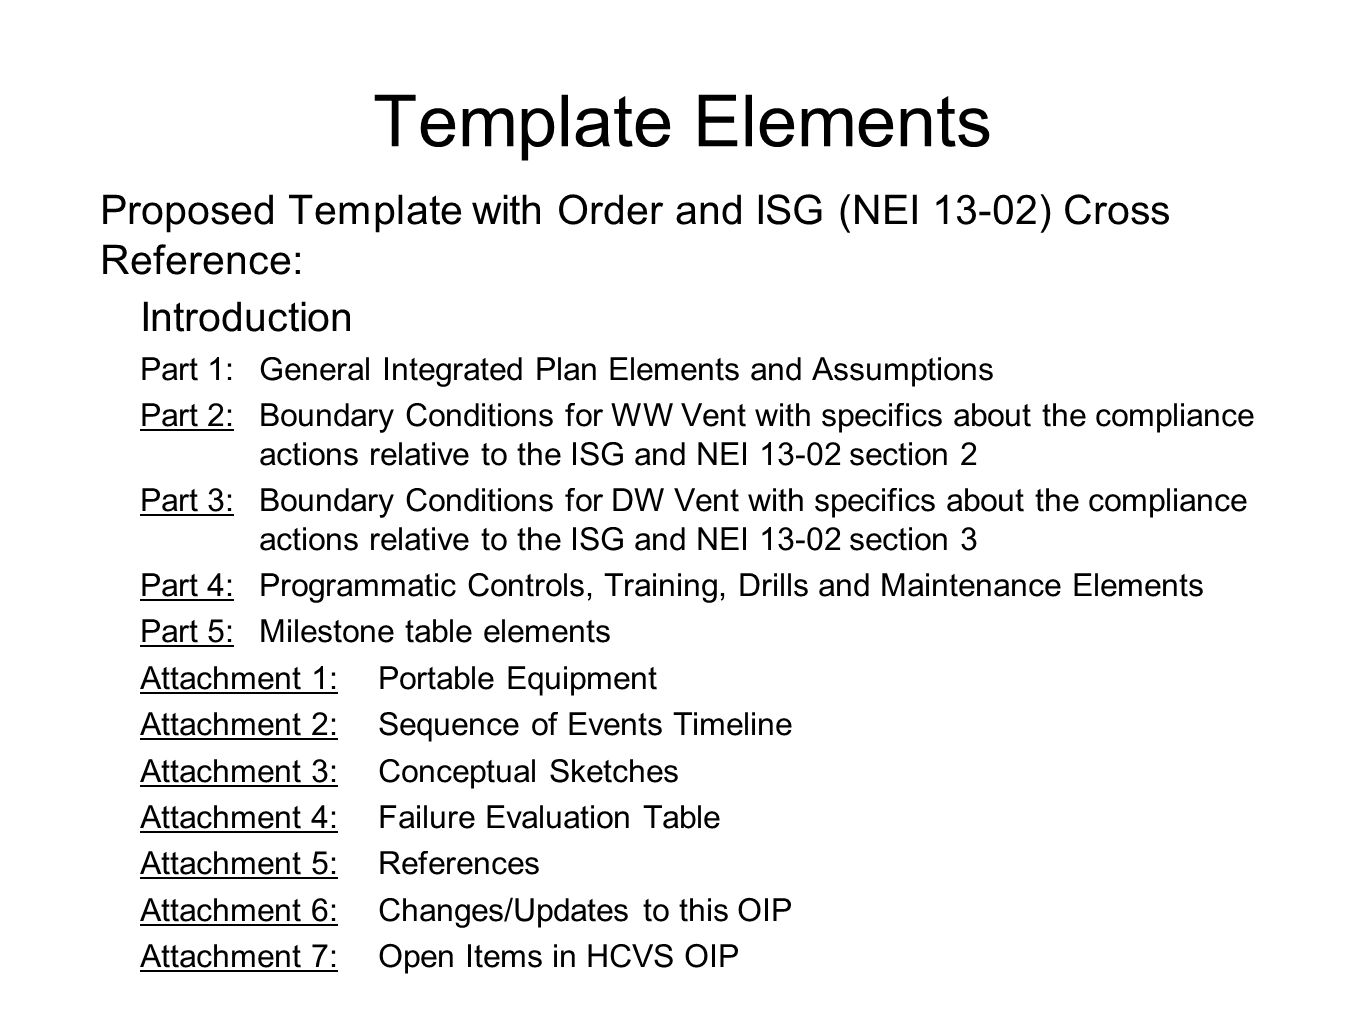 Template Elements Proposed Template with Order and ISG (NEI 13-02) Cross Reference: Introduction.